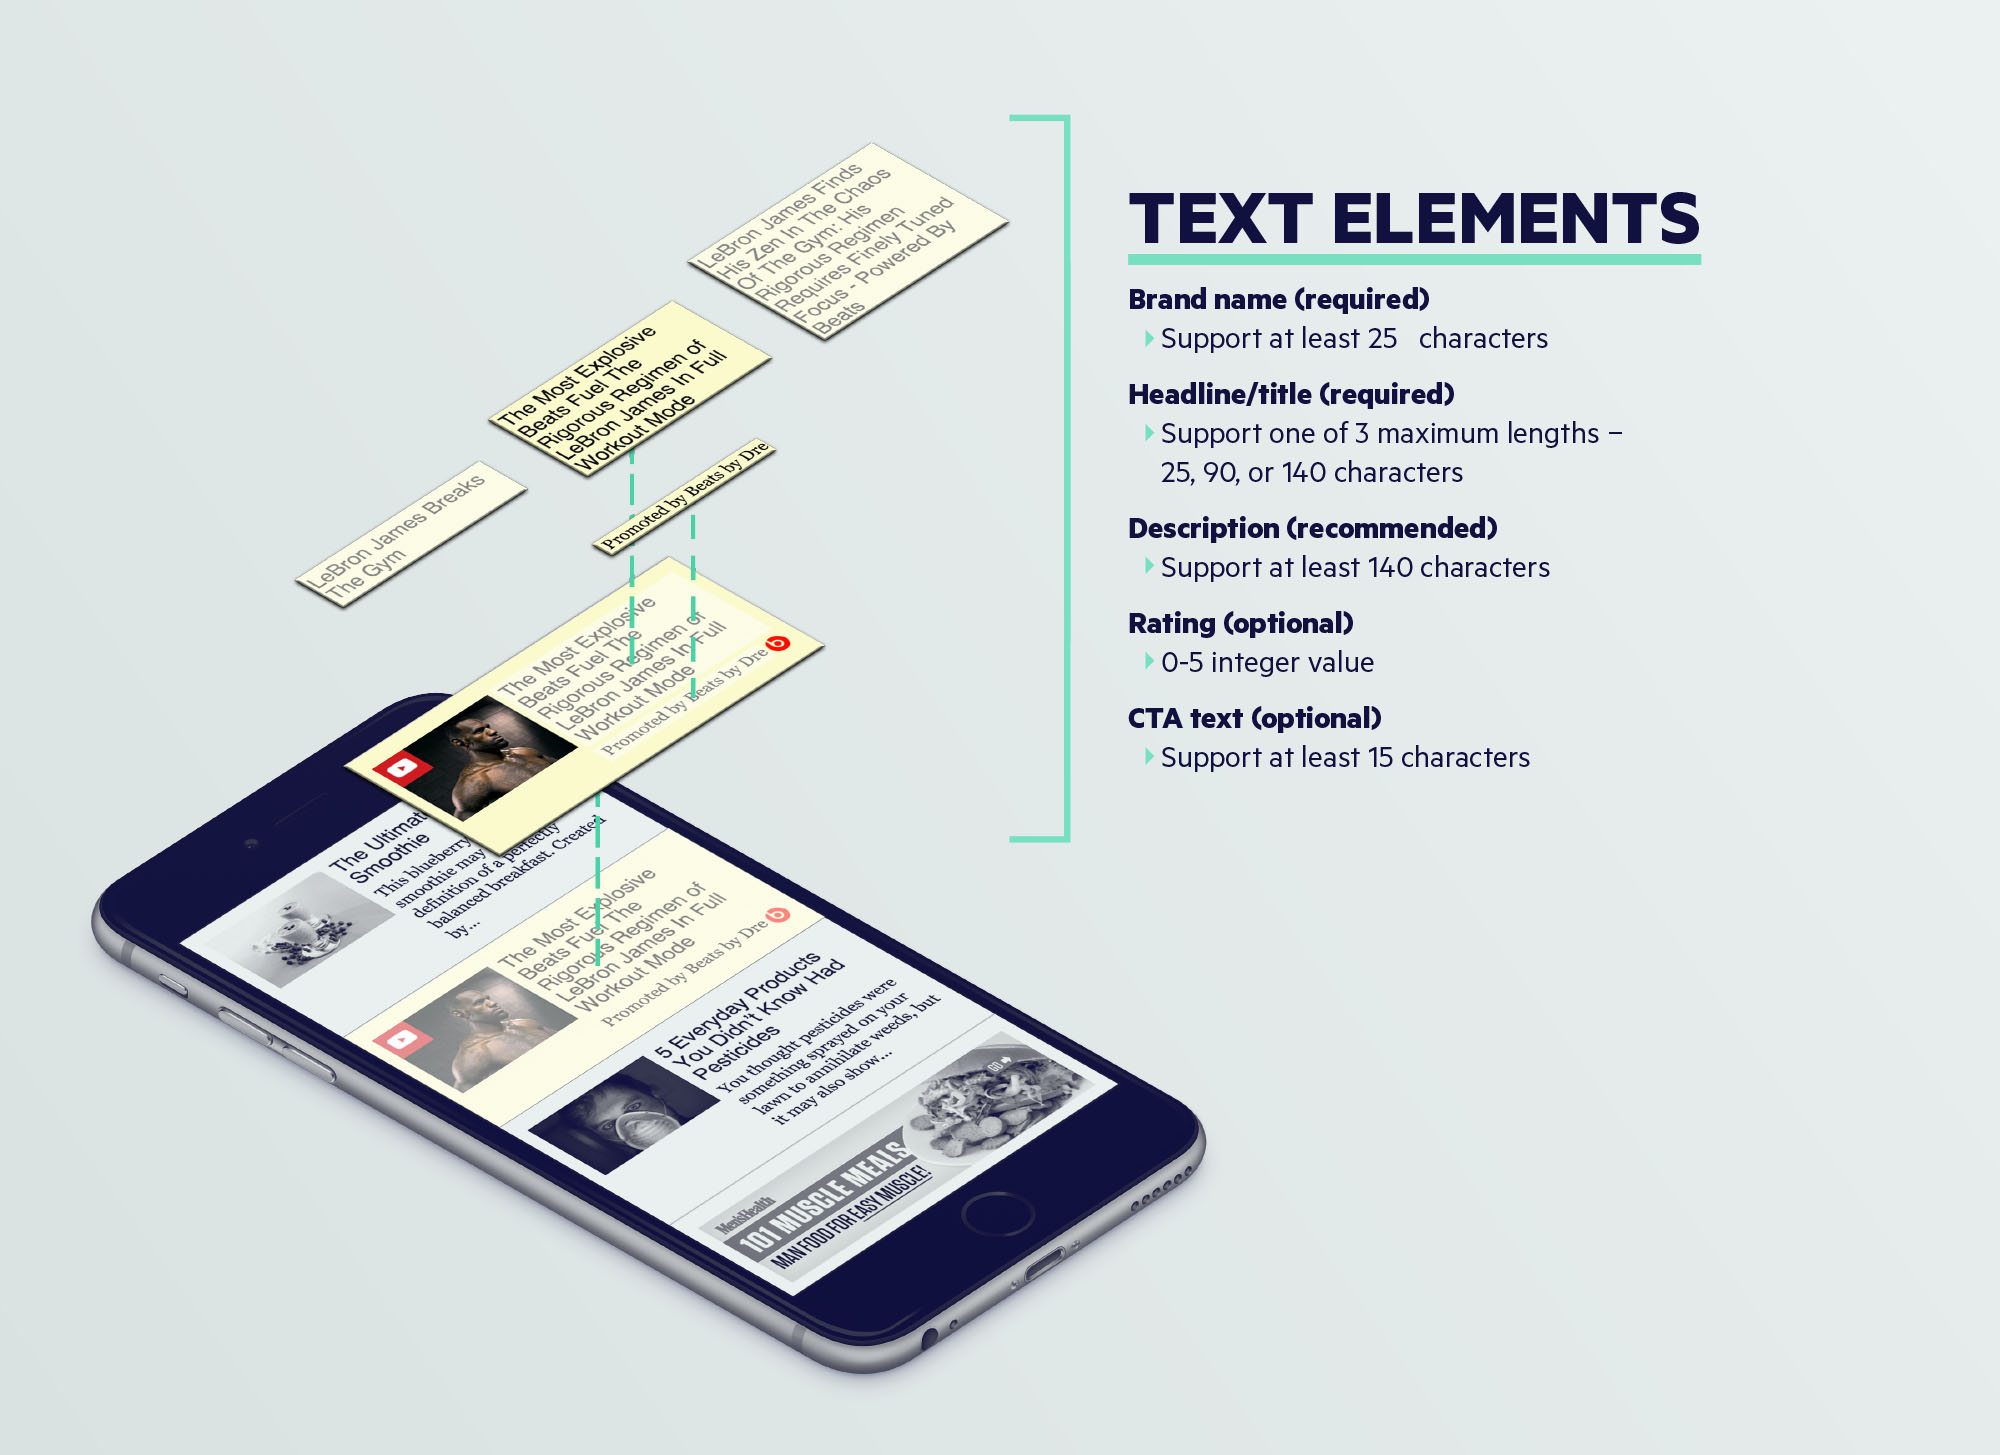 Text Elements Of OpenRTB 2.4 And Native 1.1